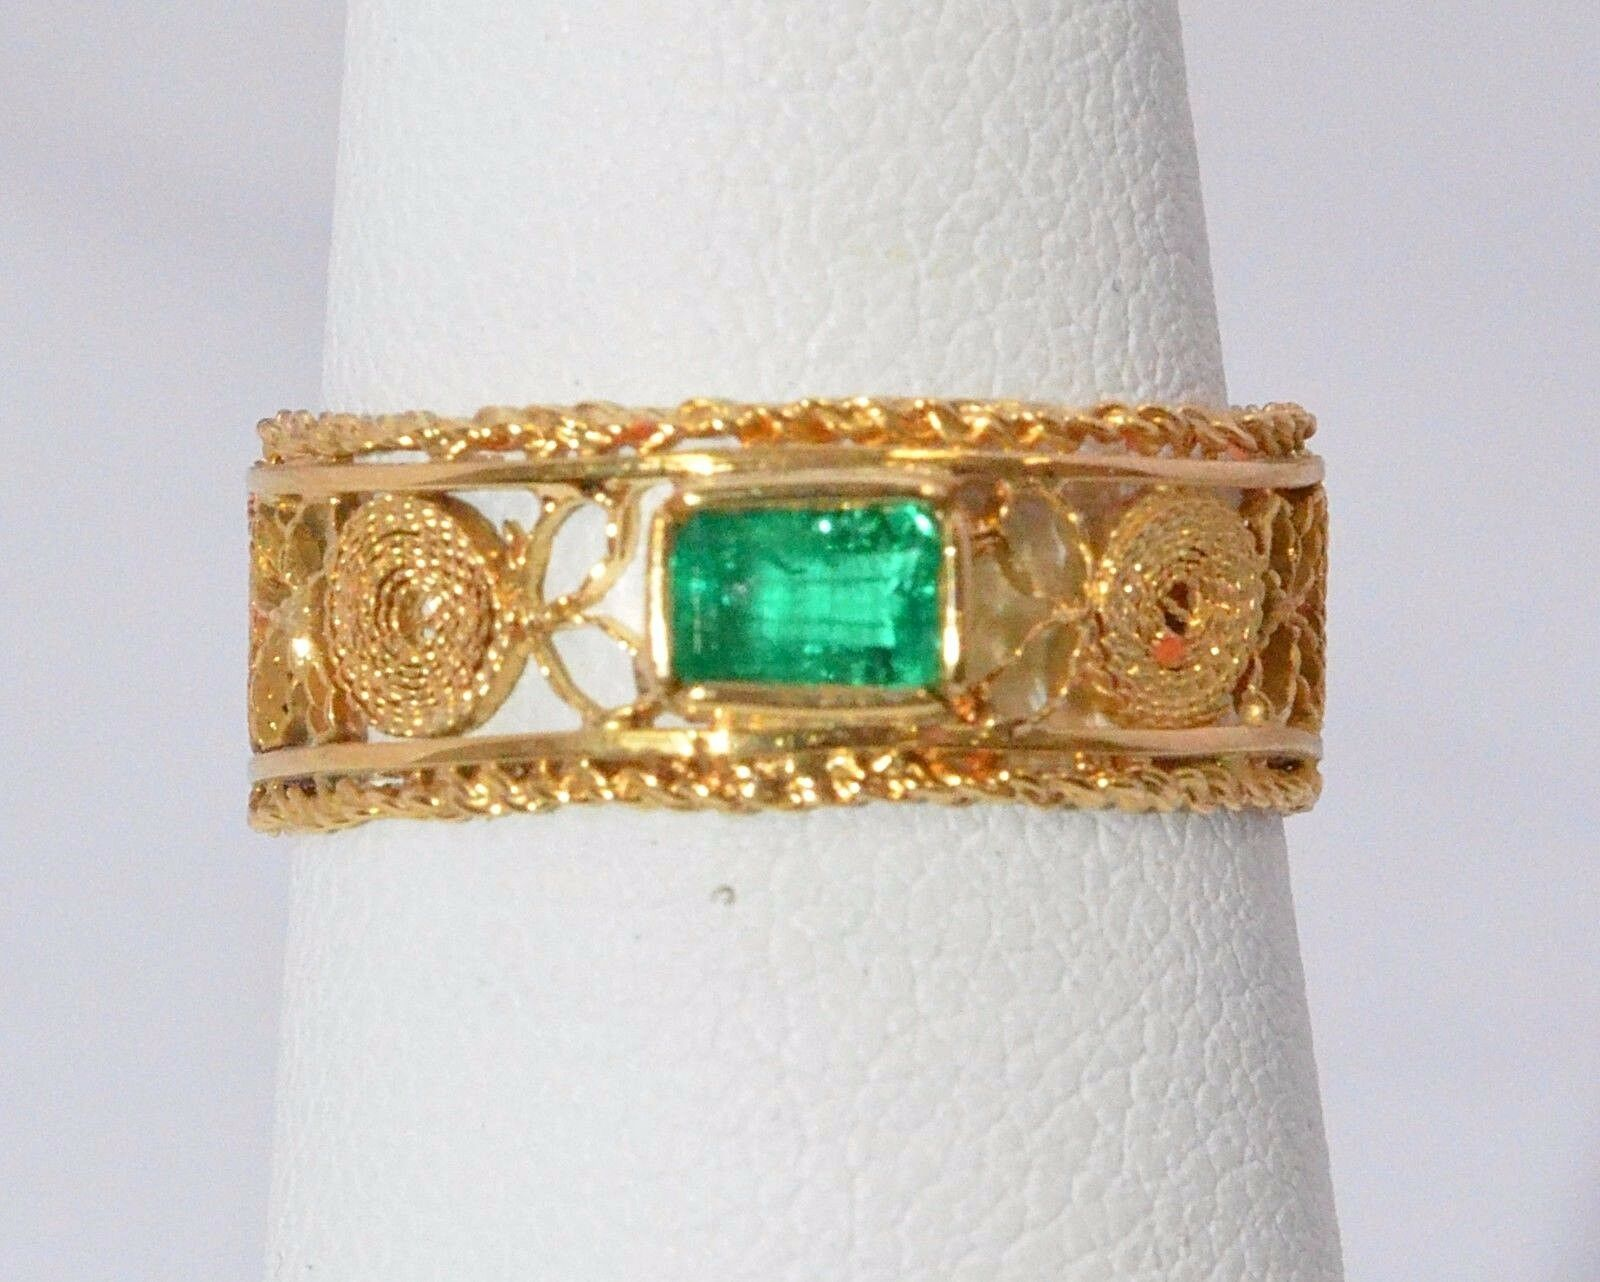 2516- 18K YELLOW gold WITH EMERALD 2.80 GRAMS SZ 6 1 2RING